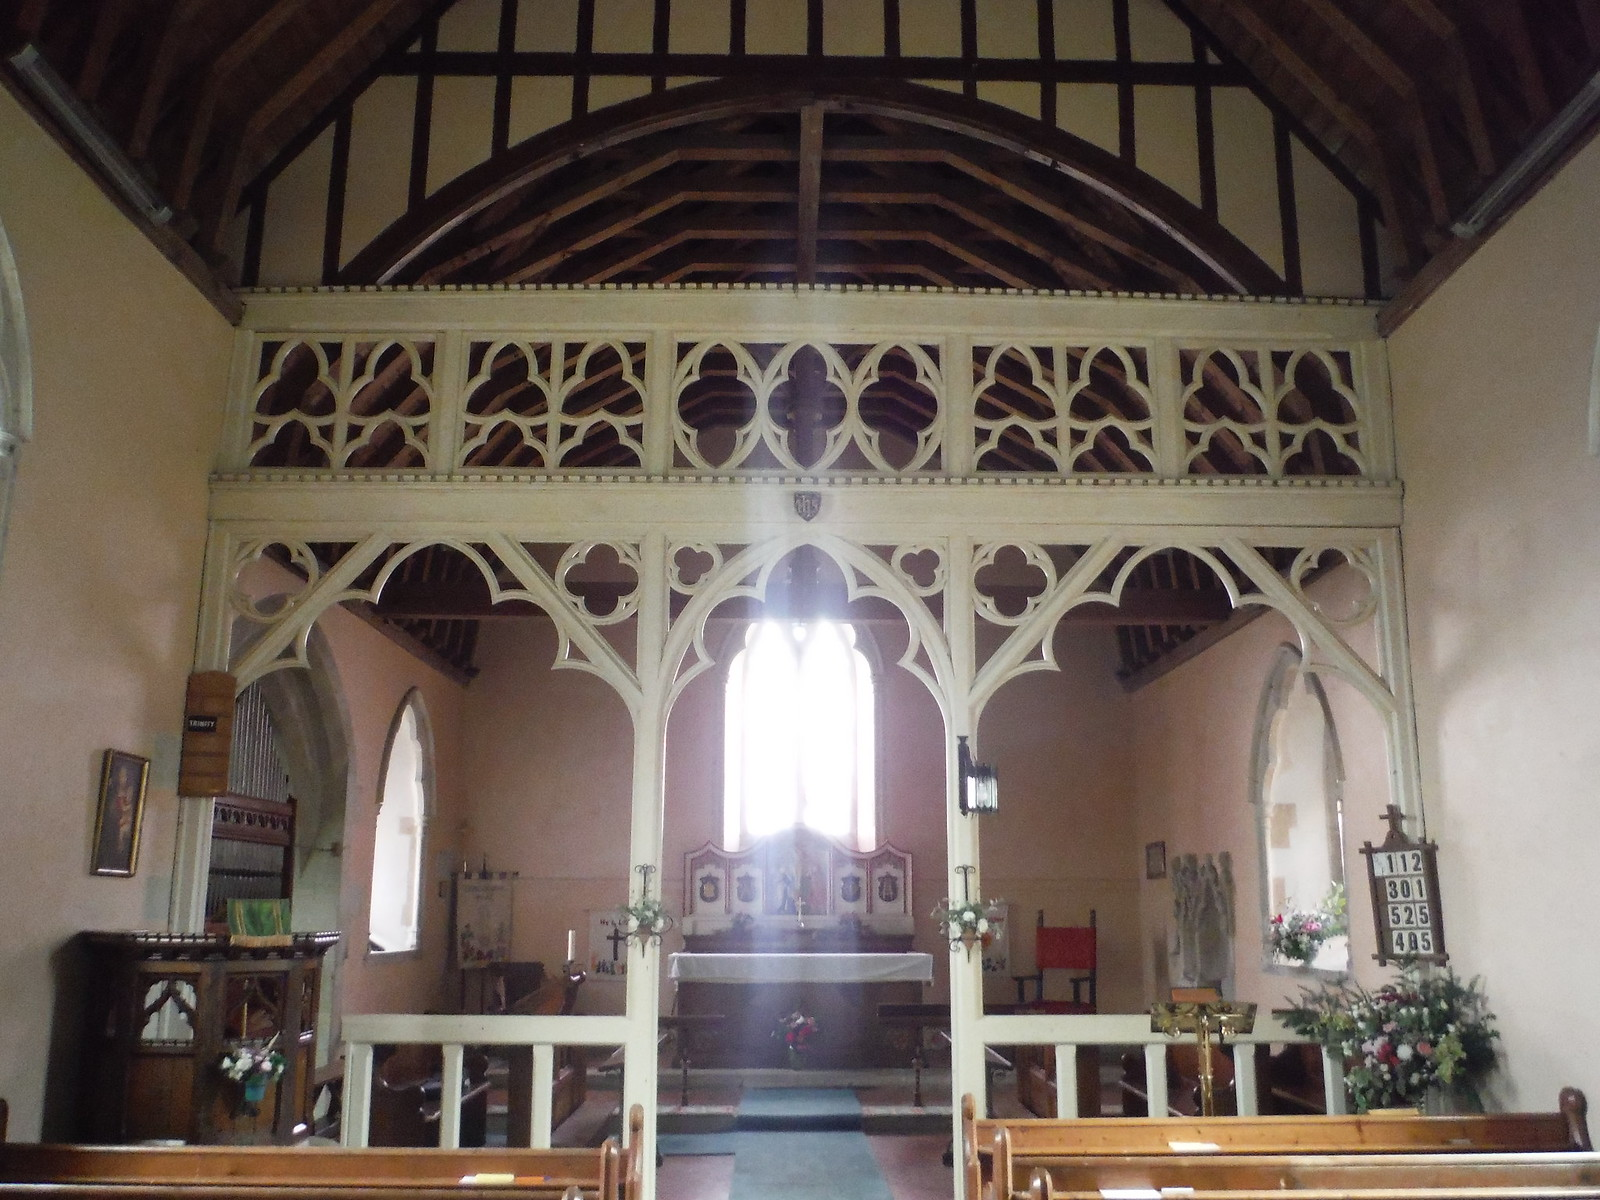 St. John the Baptist, Ebbesbourne Wake, Interior SWC Walk 250 Tisbury Circular via Alvediston